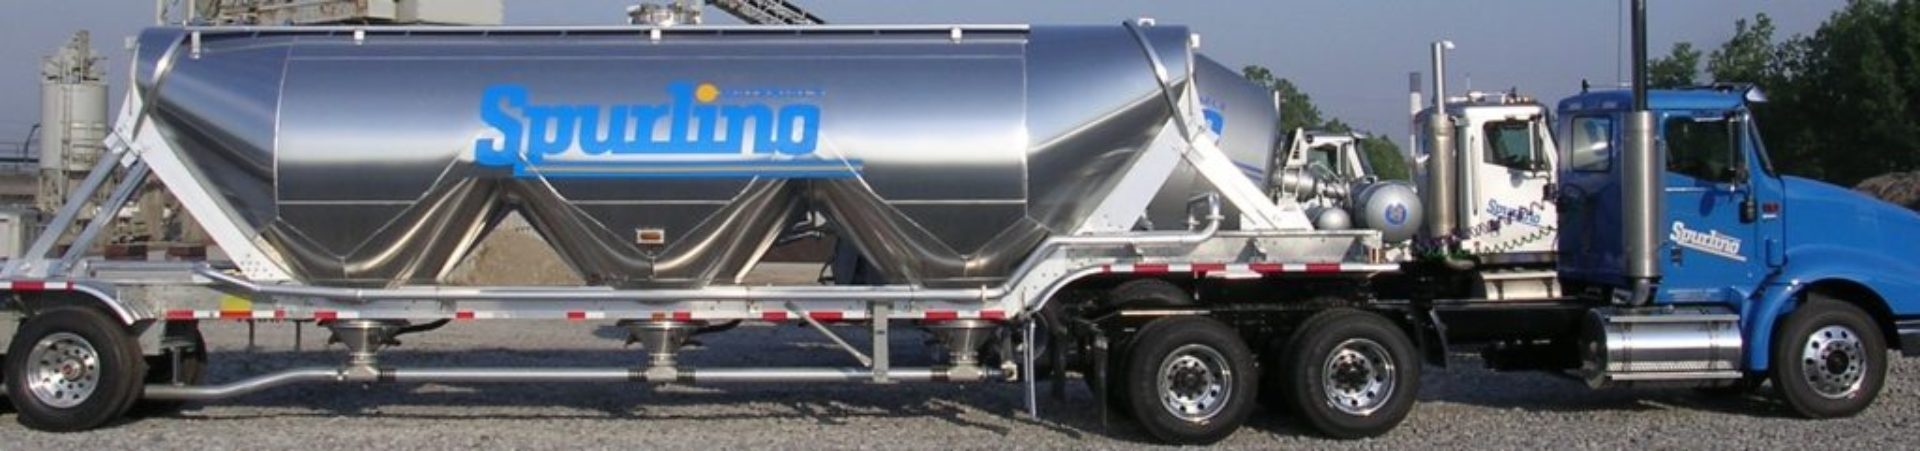 Cement Tanker_cropped 12 11 17